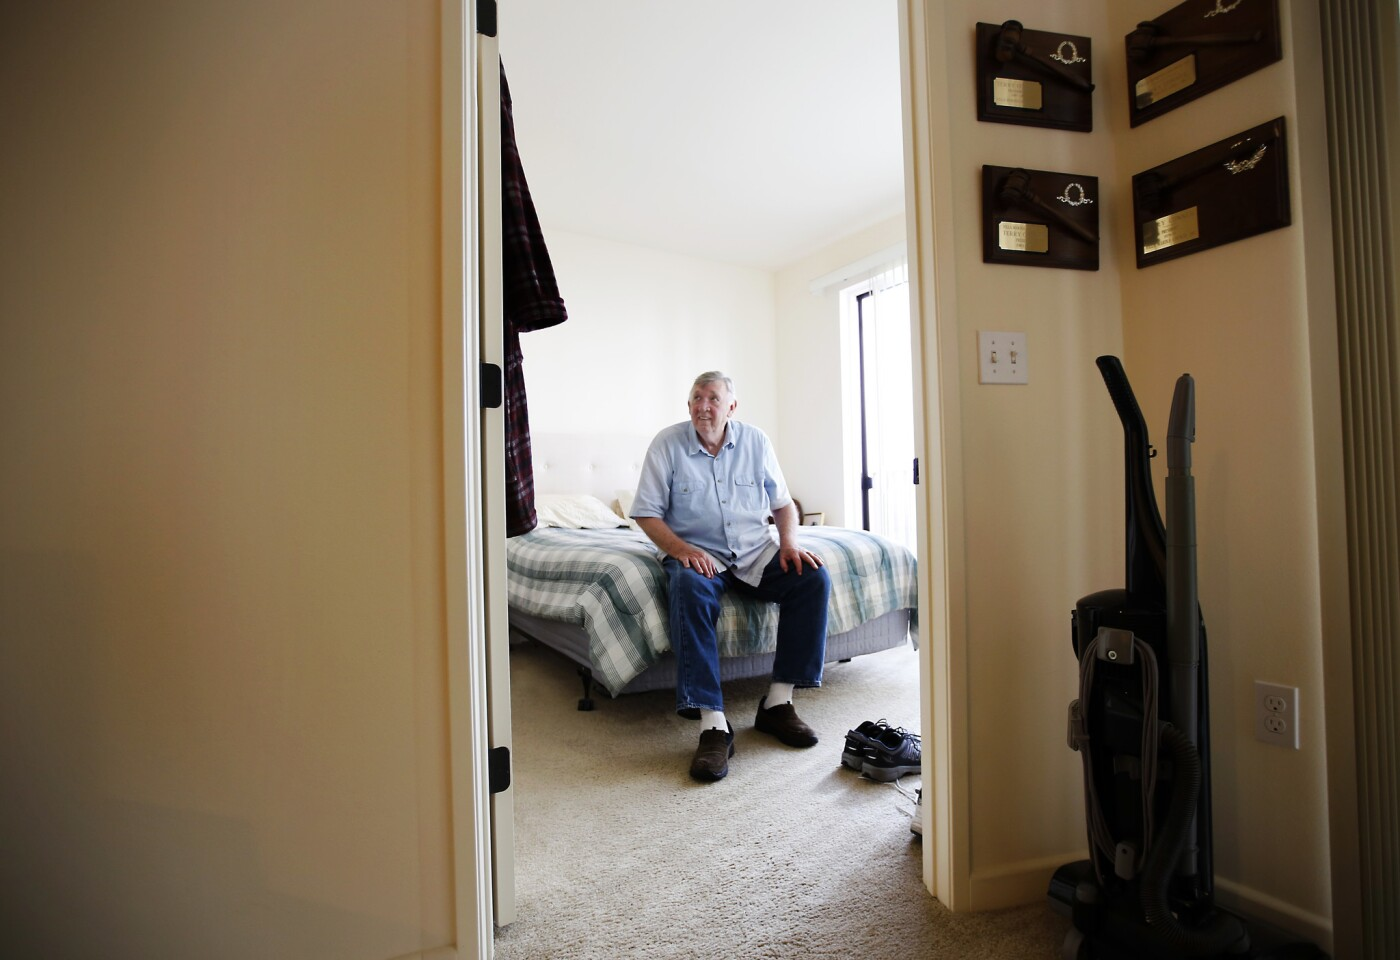 Resident Terry Conner, 73, sits on his bed, putting on his shoes in his apartment at The Woods at Playa.